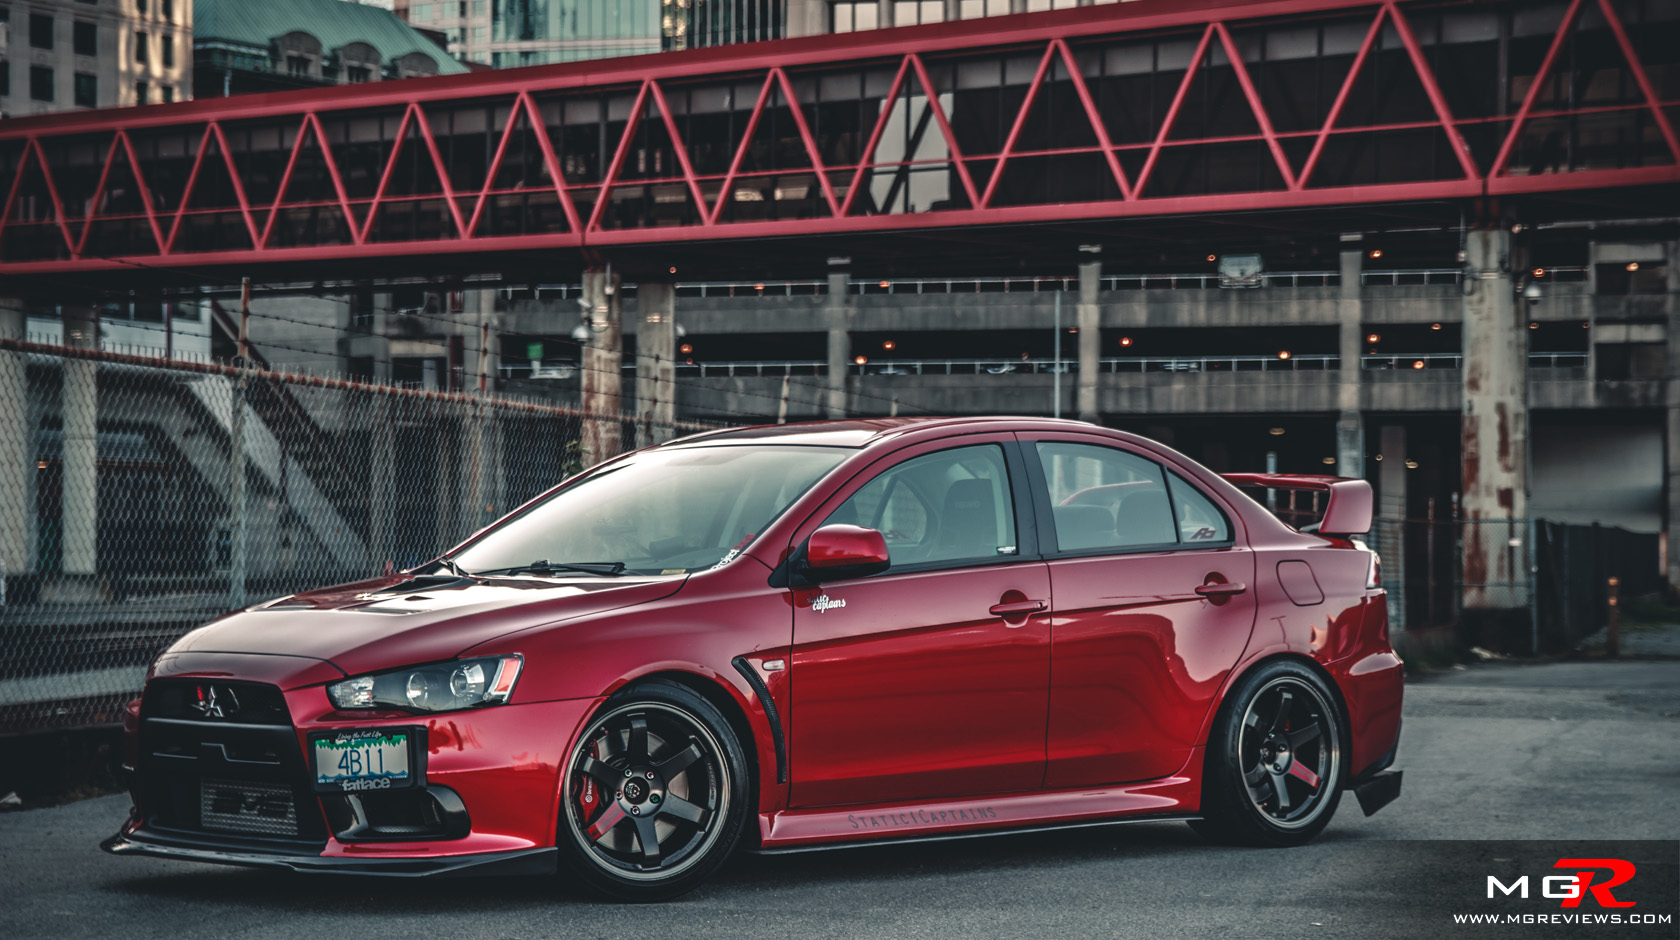 Evo 10 Wallpaper Photos 2010 Mitsubishi Lancer Evolution X Gsr Modified M G